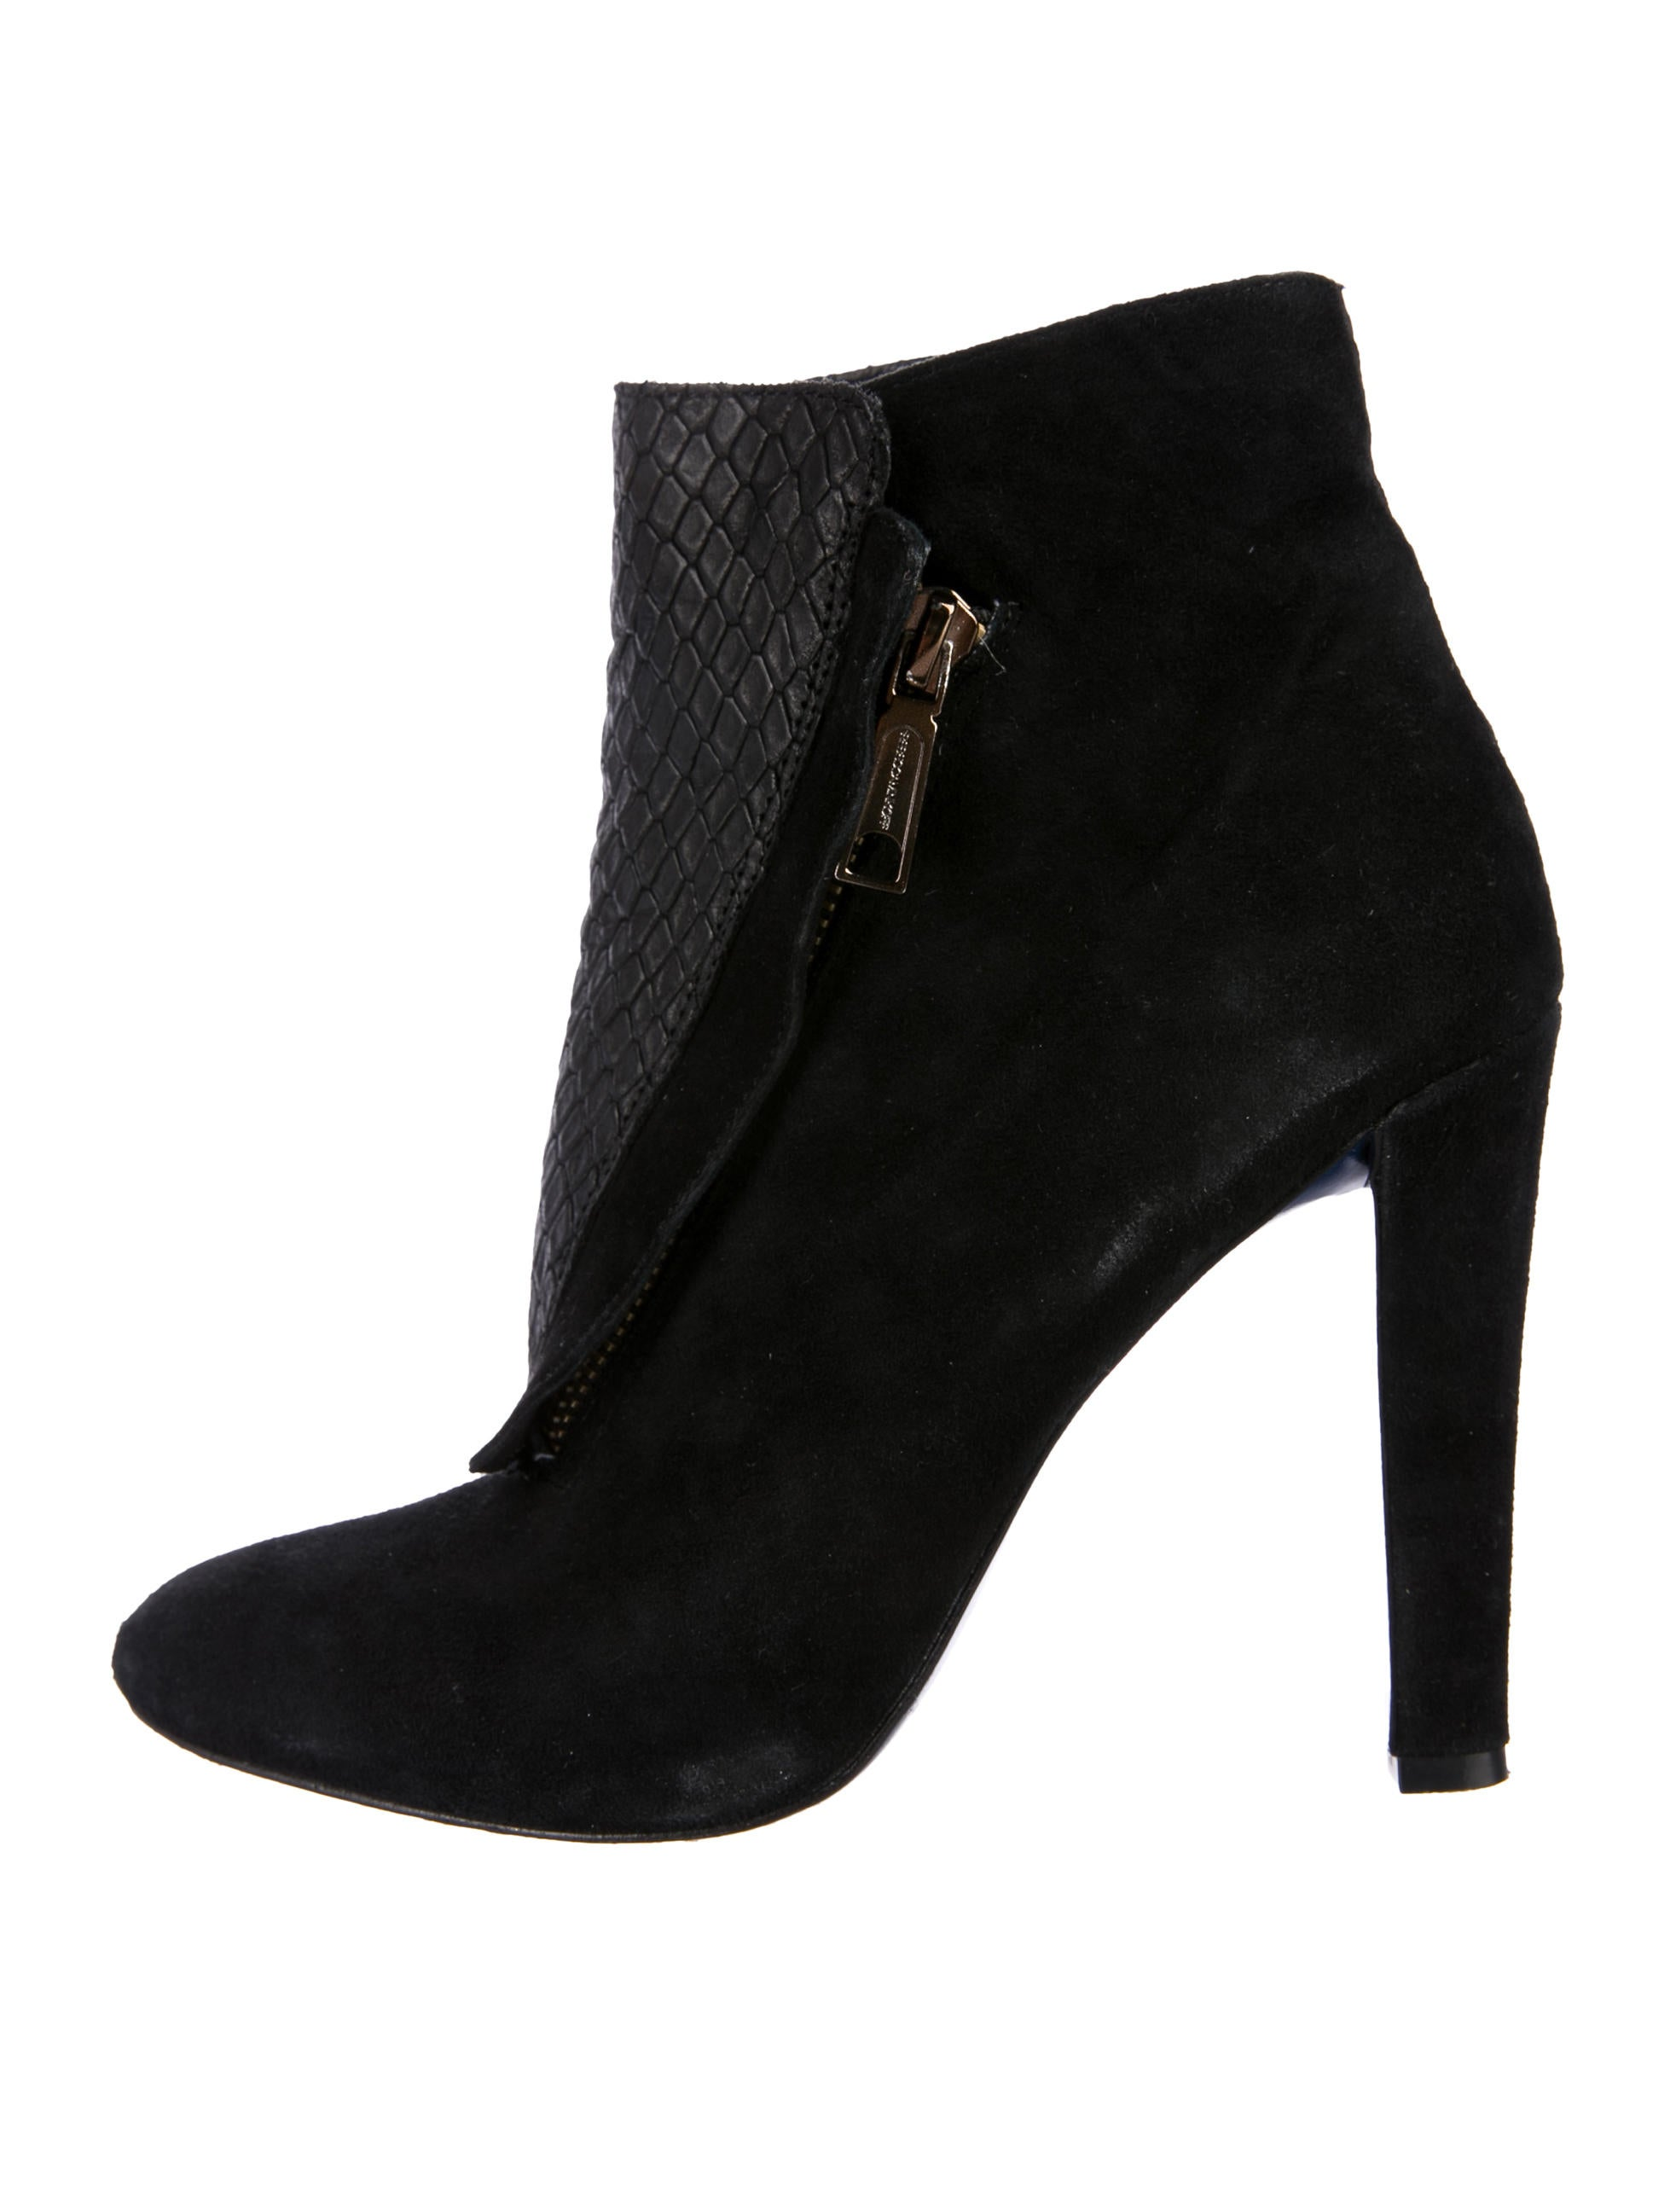 Rebecca Minkoff Suede Pointed-Toe Ankle Boots discount 100% guaranteed PGUab26